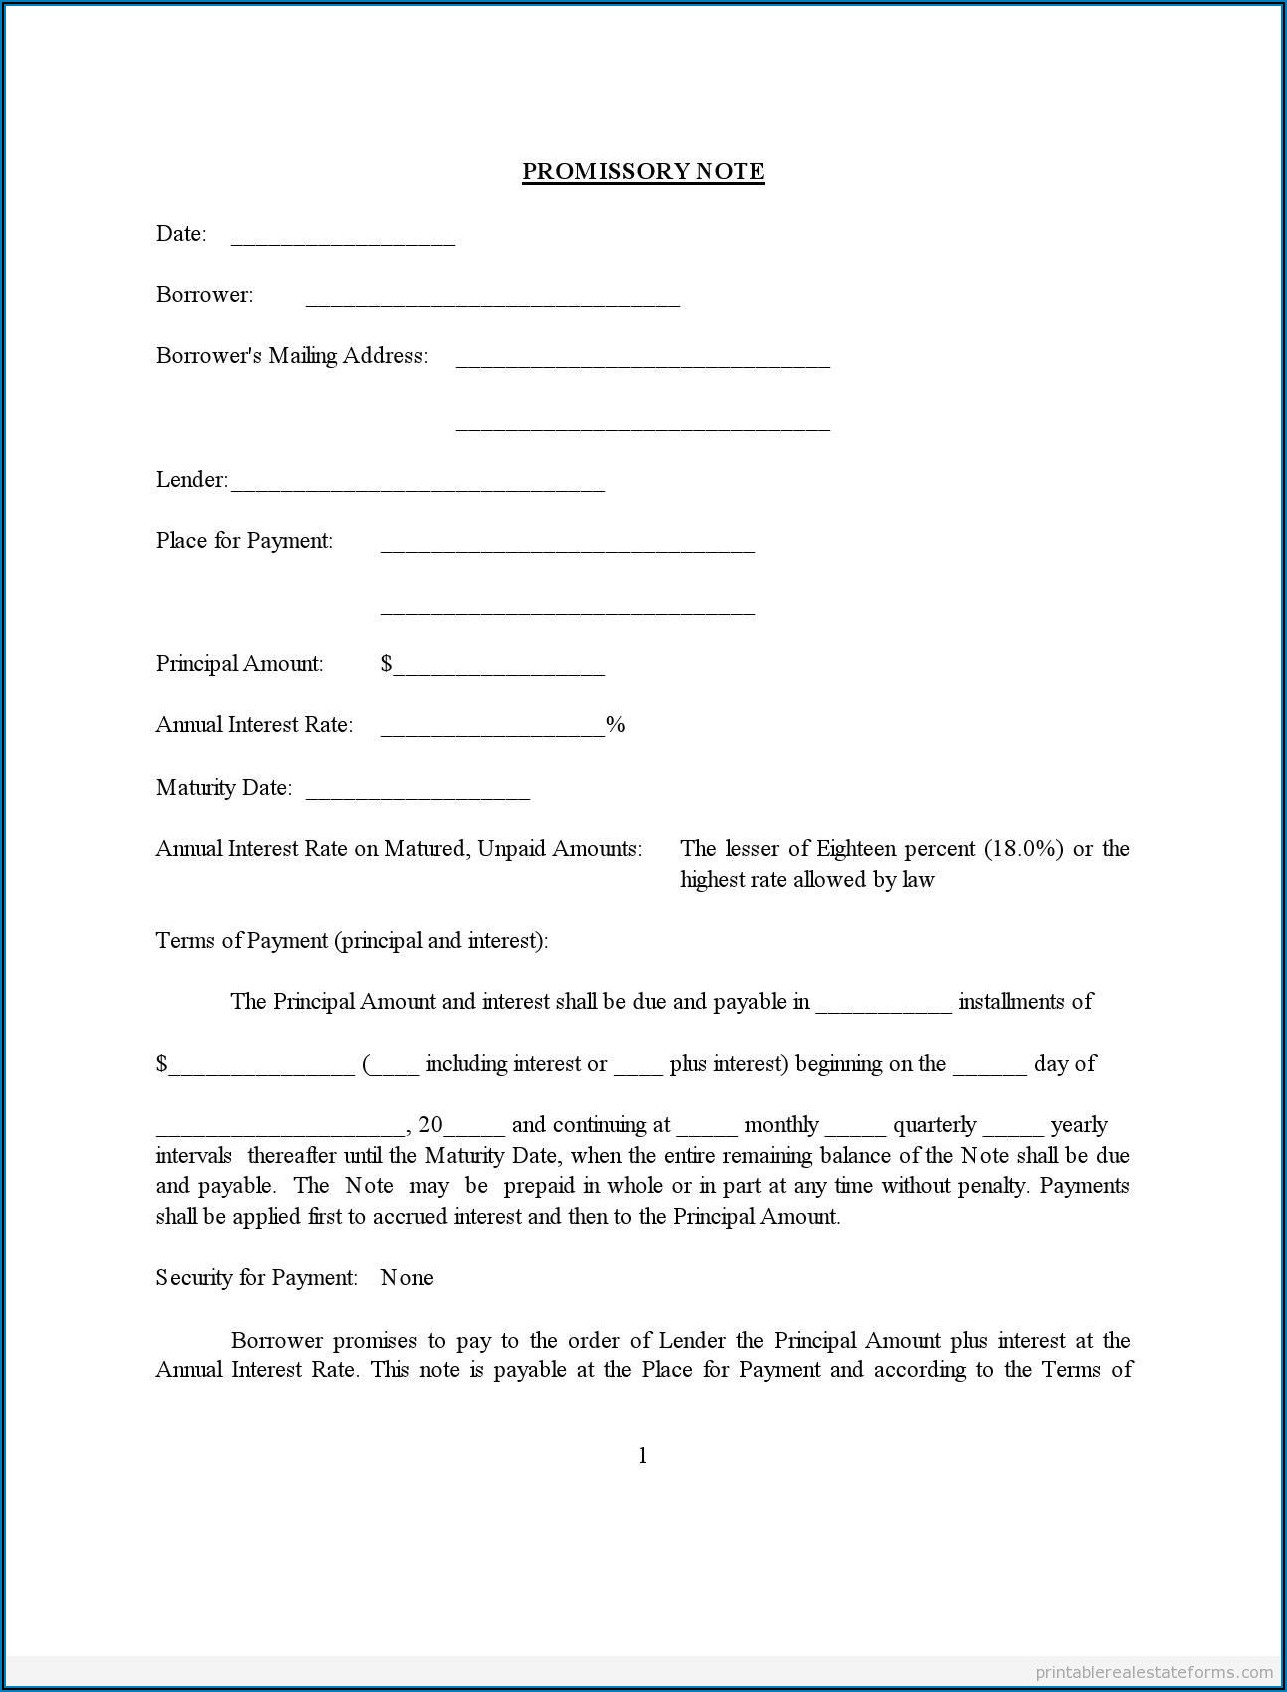 Promissory Note Sample Legal Forms